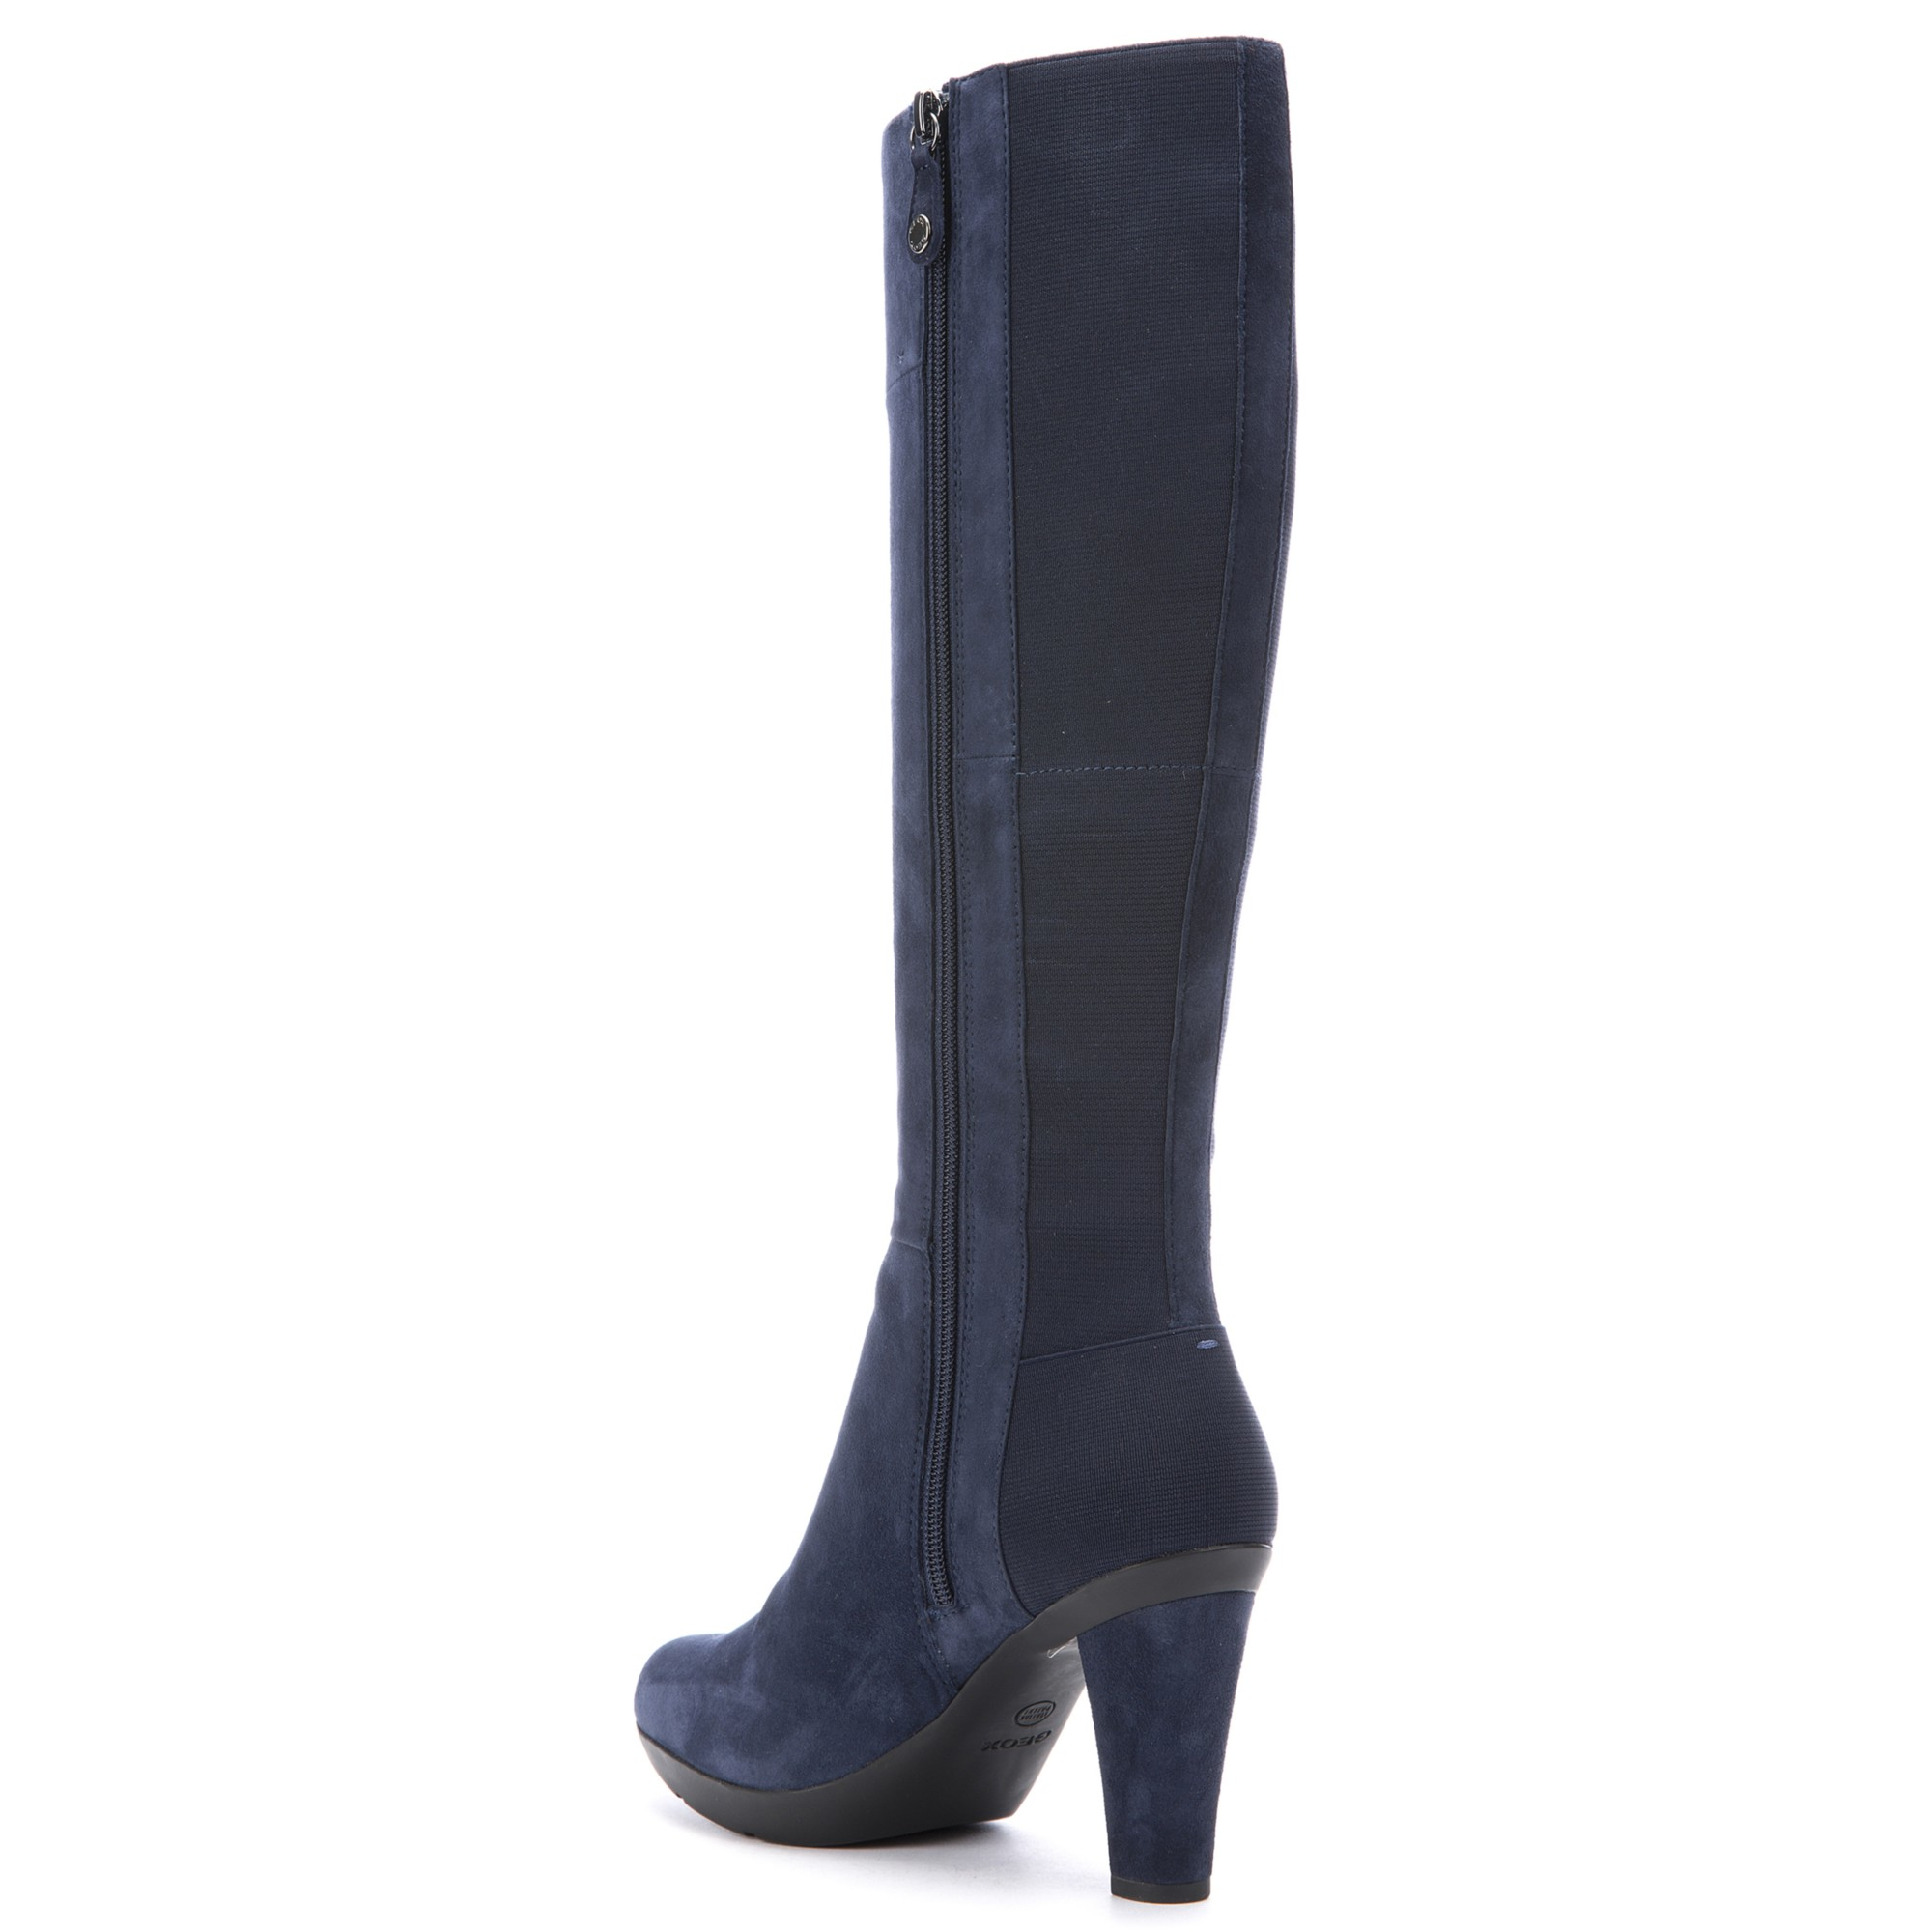 a190f9f1b6a Geox Inspiration High Heeled Knee High Boots in Blue - Lyst